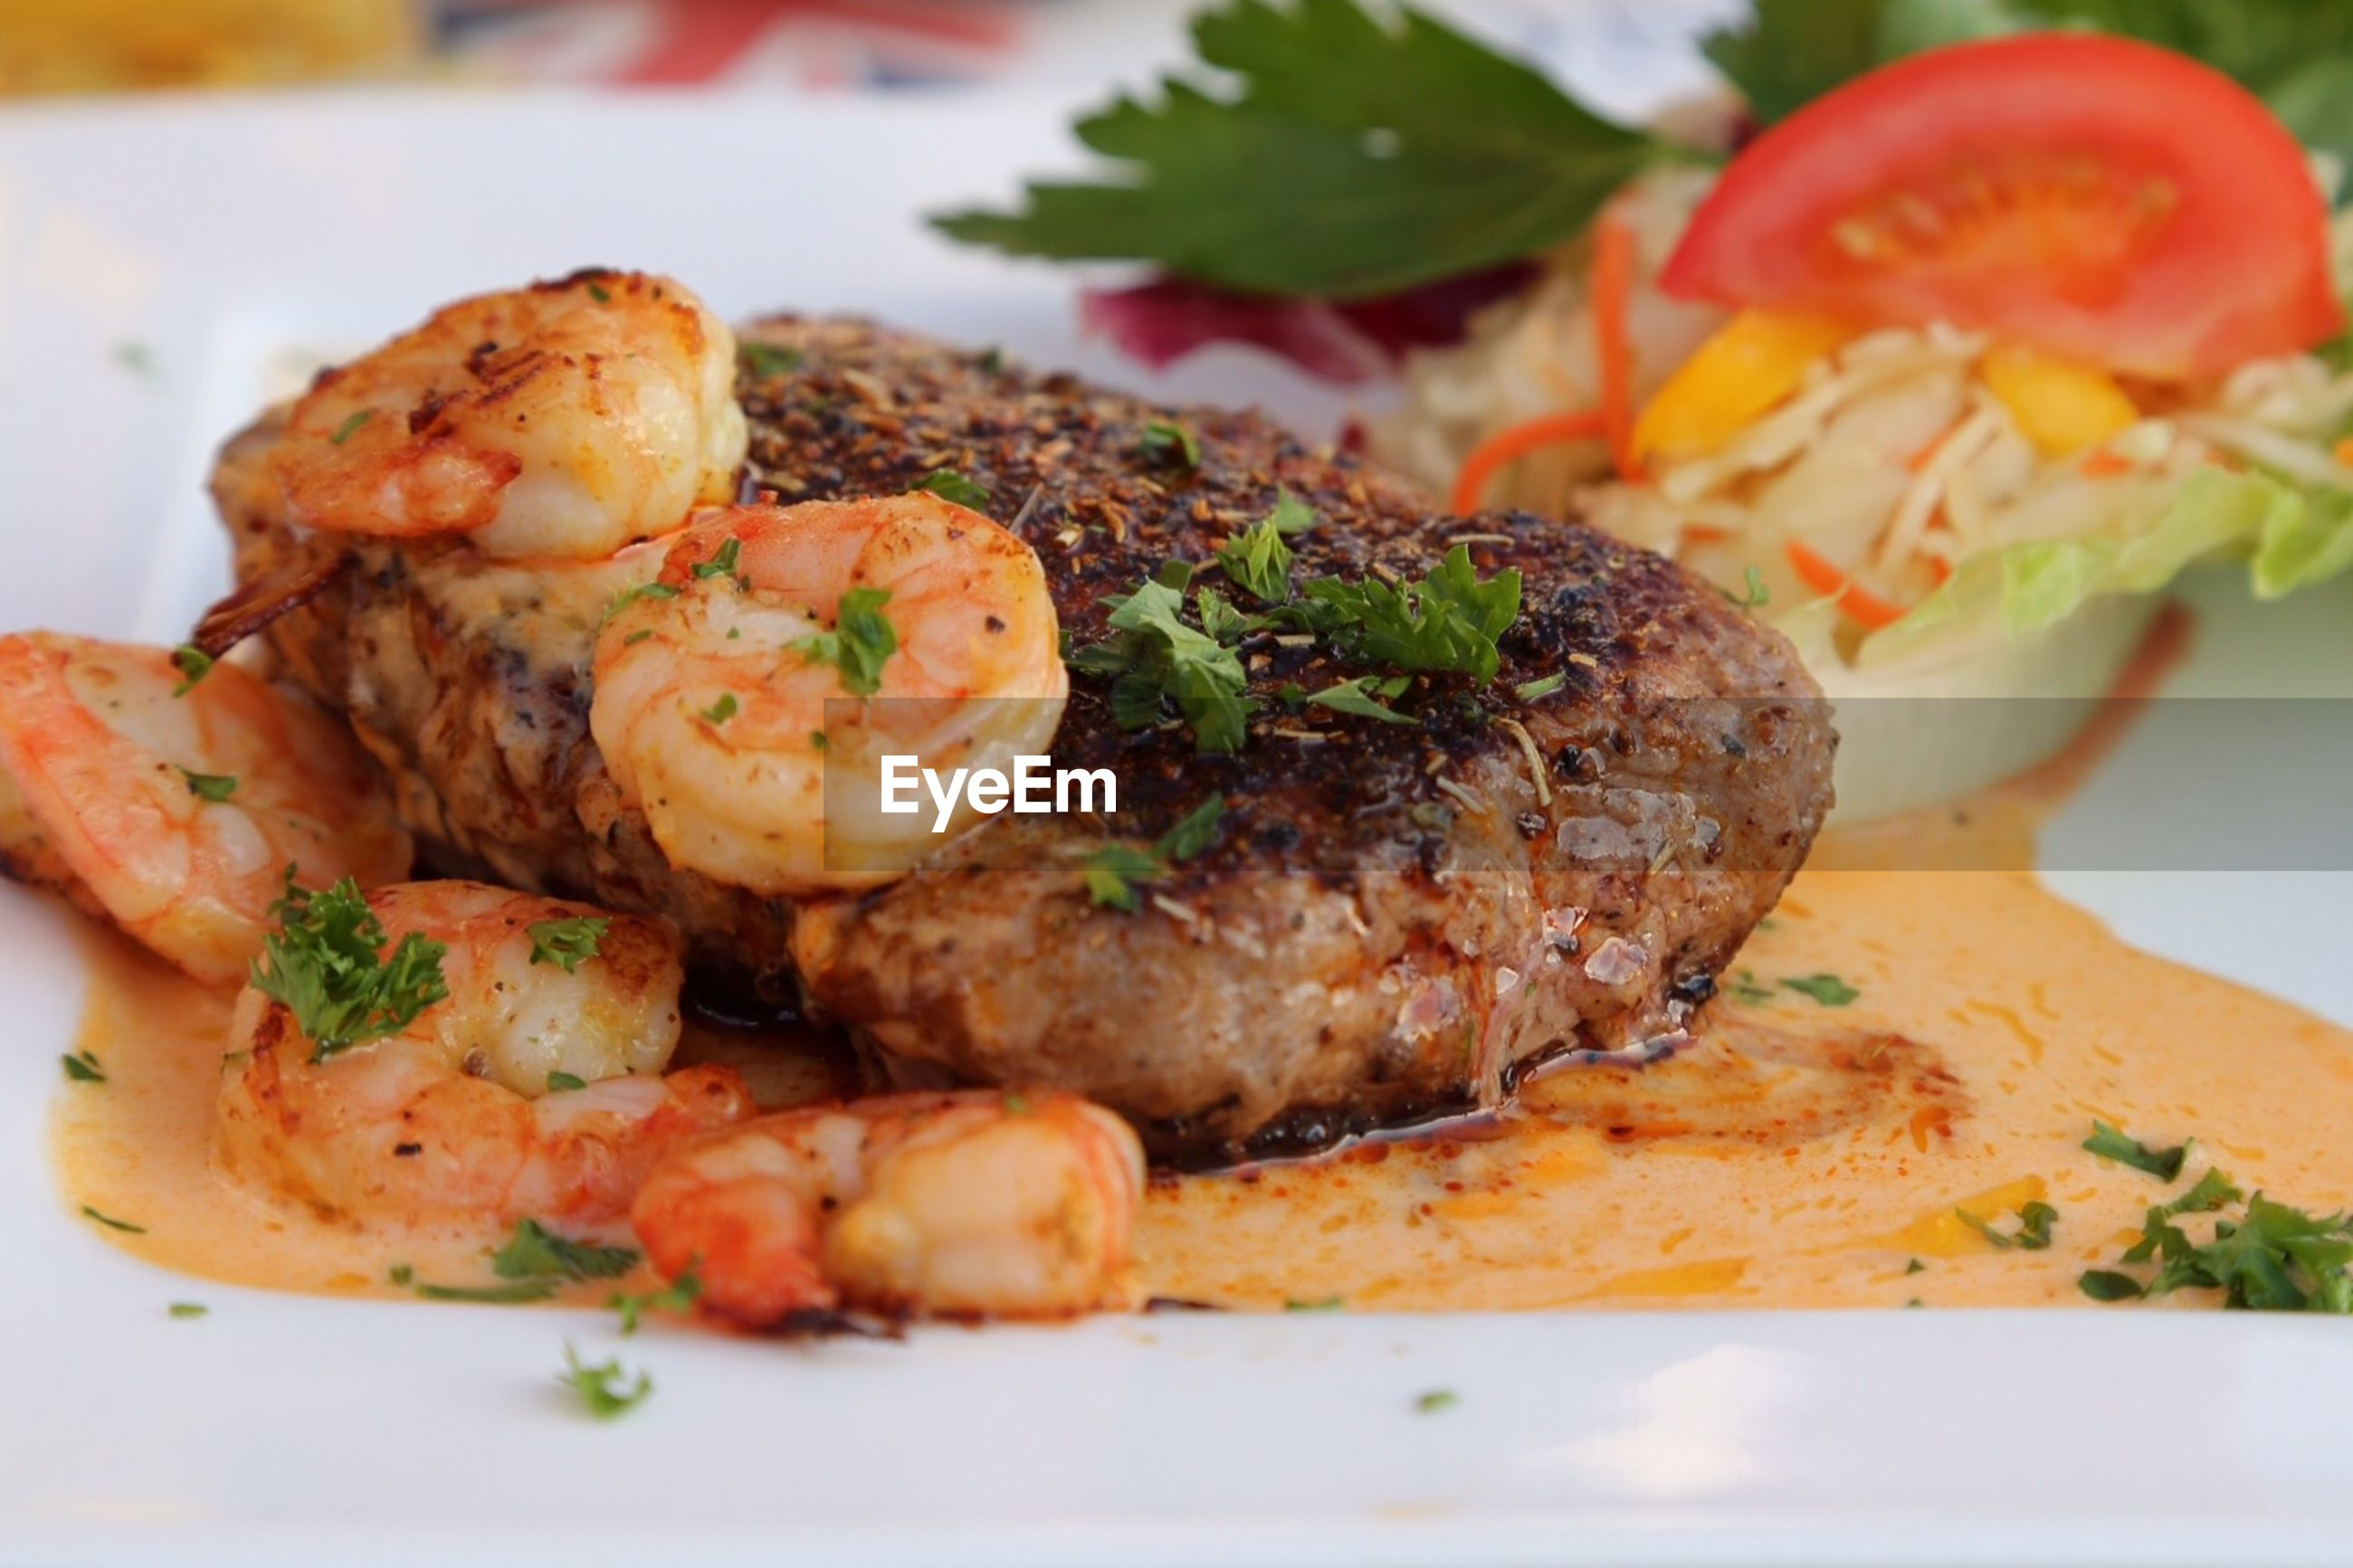 Close-up of served seafood with beef in plate